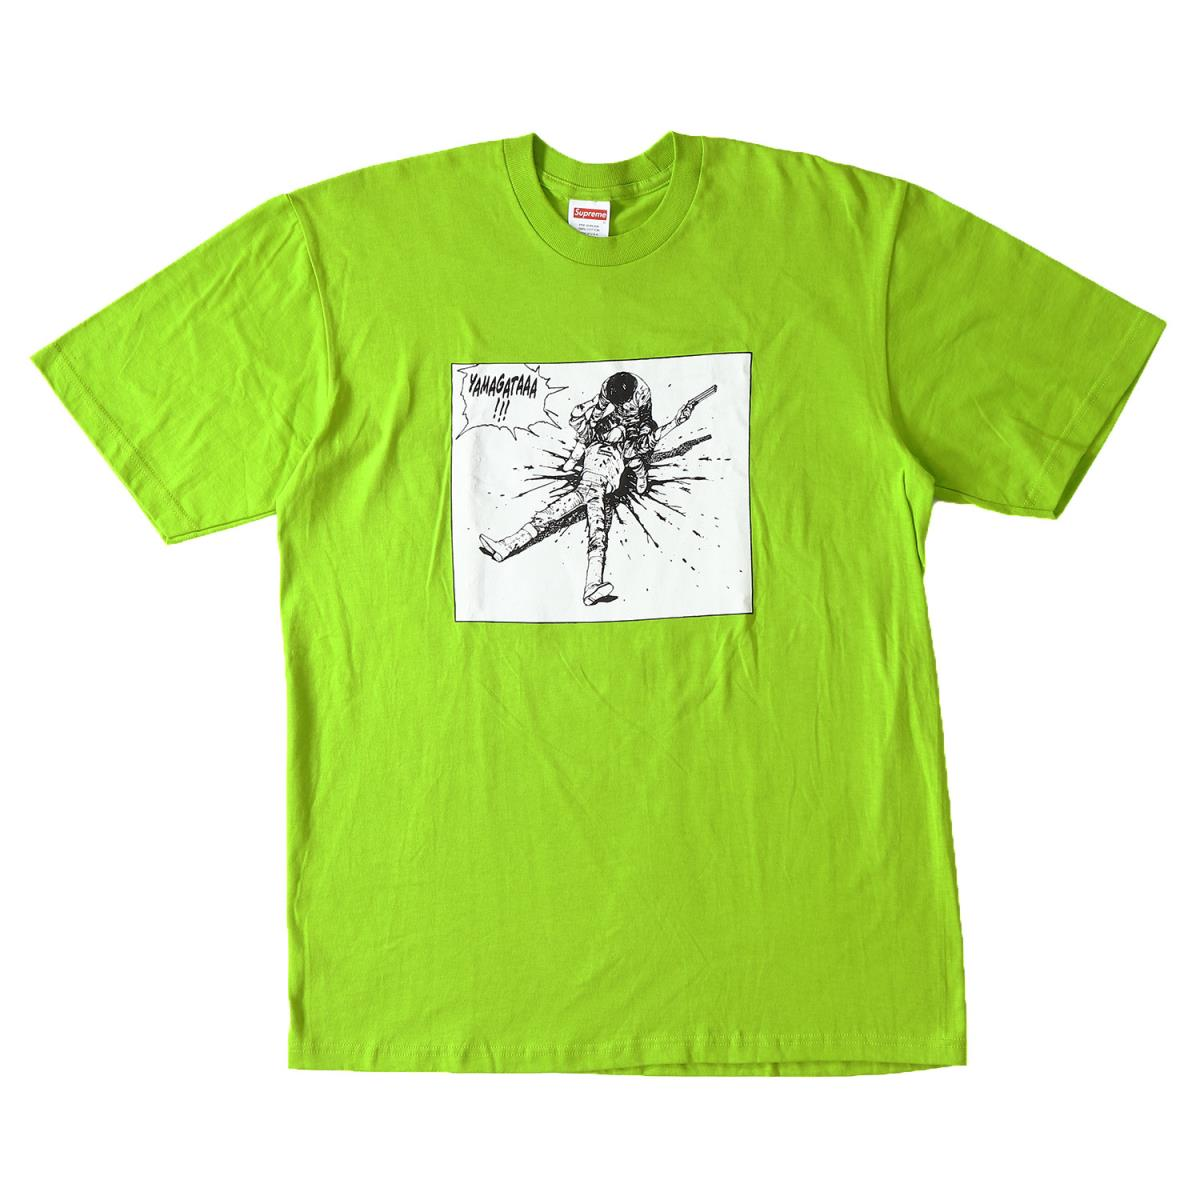 6fafd4a7e1d8 ... beegle by boo bee lime l for supreme シュプリーム t shirt 17aw ...